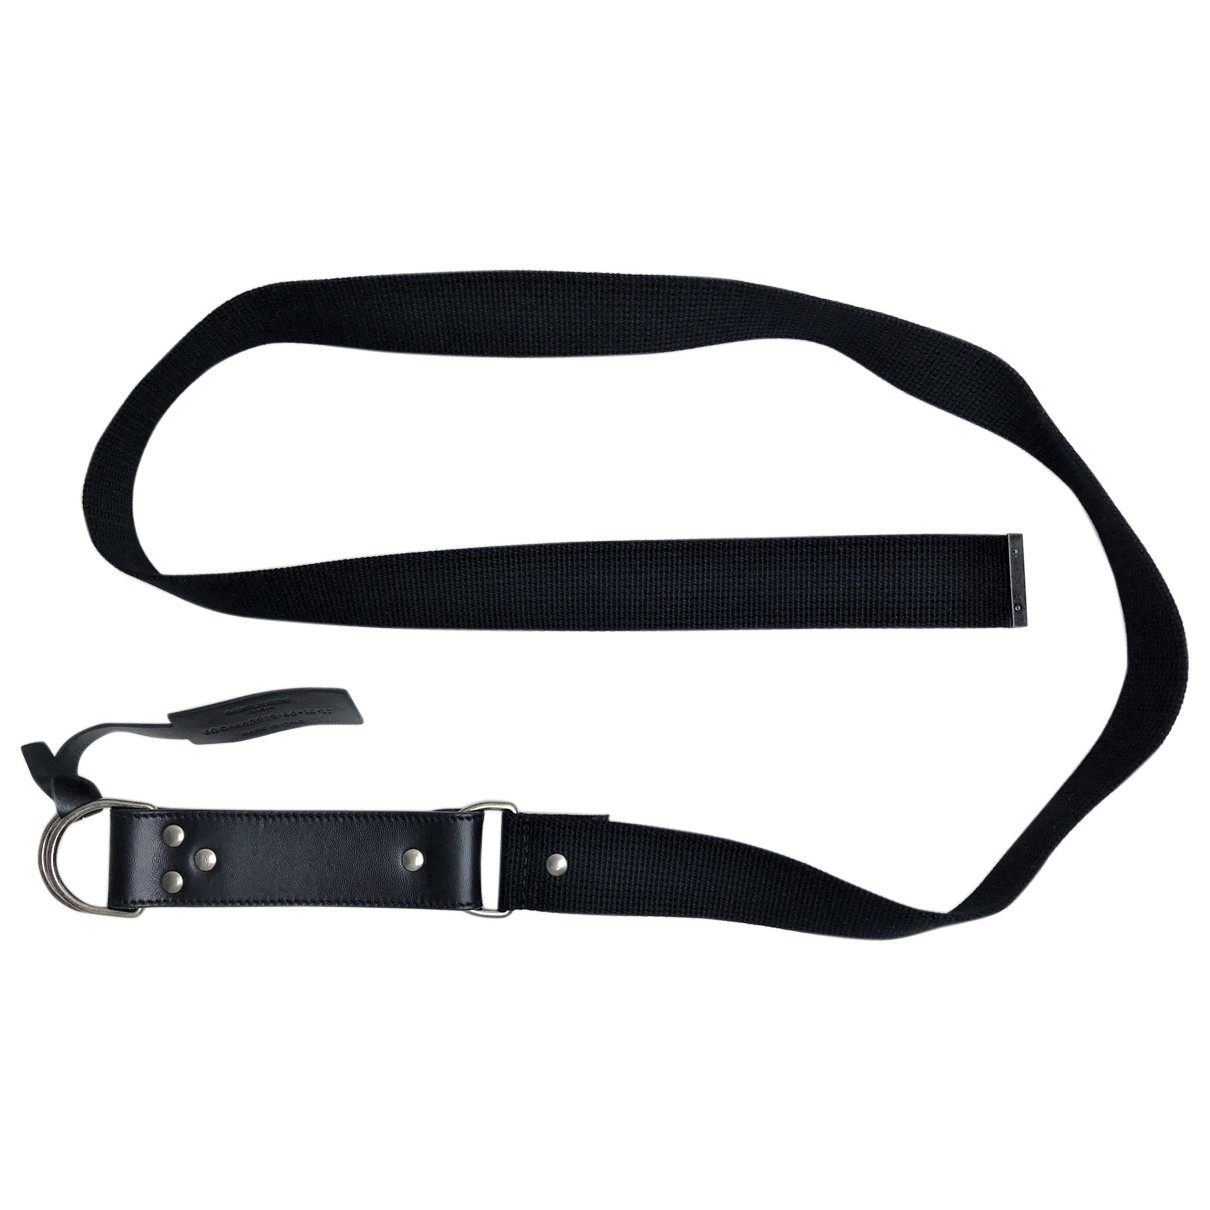 Saint Laurent N Black Cotton belt for Women 80 cm